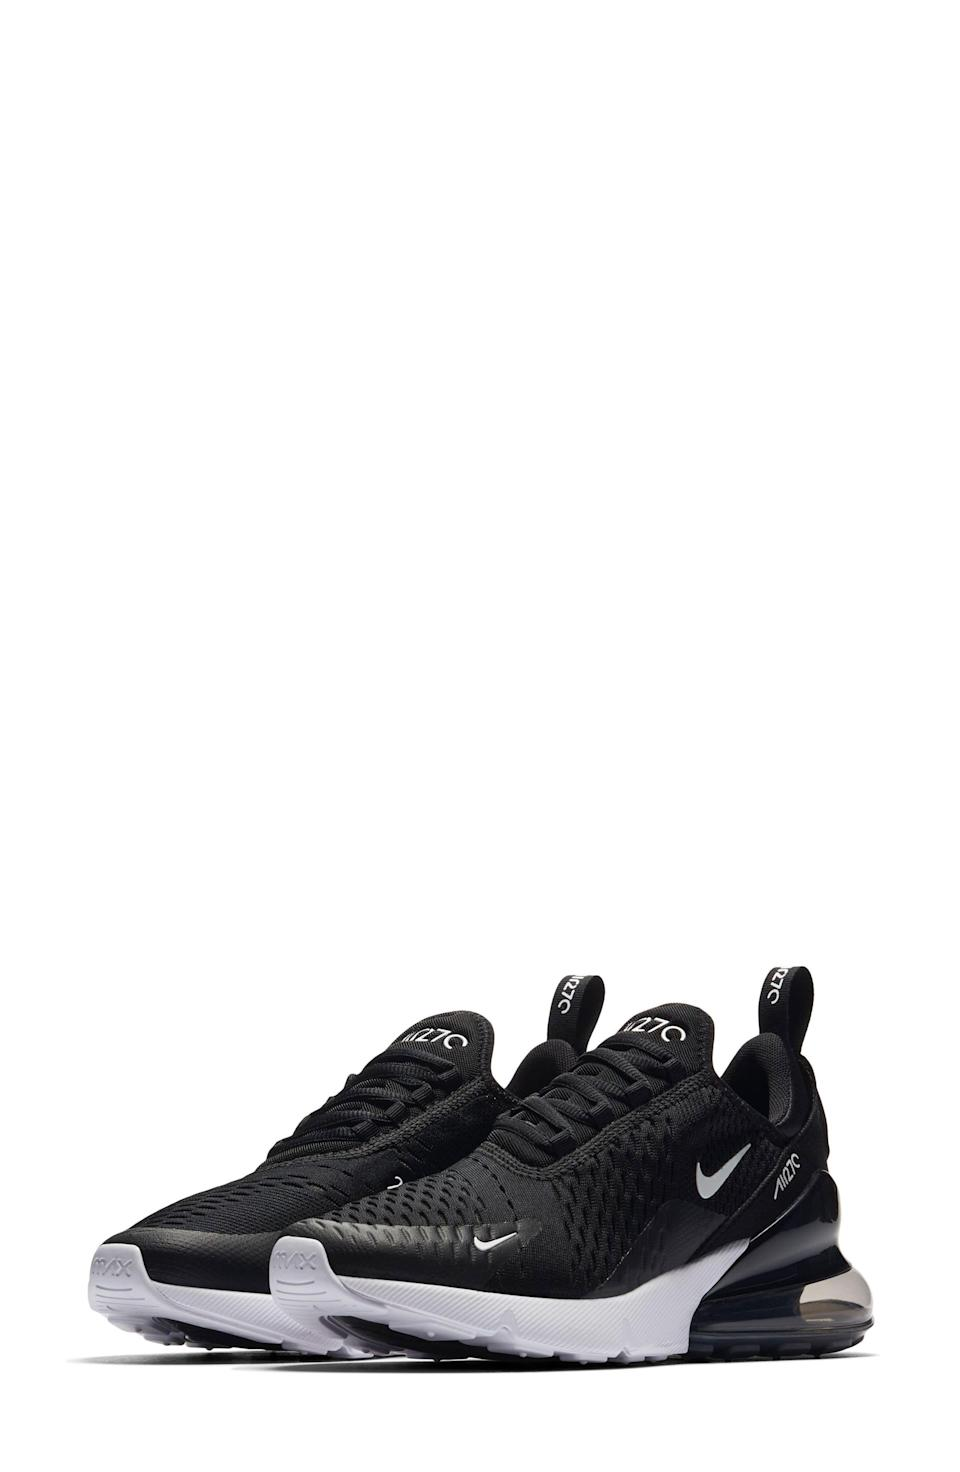 """<p><strong>NIKE</strong></p><p>nordstrom.com</p><p><strong>$150.00</strong></p><p><a href=""""https://go.redirectingat.com?id=74968X1596630&url=https%3A%2F%2Fwww.nordstrom.com%2Fs%2Fnike-air-max-270-premium-sneaker-women%2F4700177&sref=https%3A%2F%2Fwww.womenshealthmag.com%2Ffitness%2Fg36063460%2Fbest-black-sneakers%2F"""" rel=""""nofollow noopener"""" target=""""_blank"""" data-ylk=""""slk:Shop Now"""" class=""""link rapid-noclick-resp"""">Shop Now</a></p><p>Open-weave mesh meets flexibility for one of the comfiest sneakers on this list. The sock-like fit is perfect for any type of workout, whether you're considering a triathlon or want a good sneaker to pair with your Peloton workouts.</p>"""